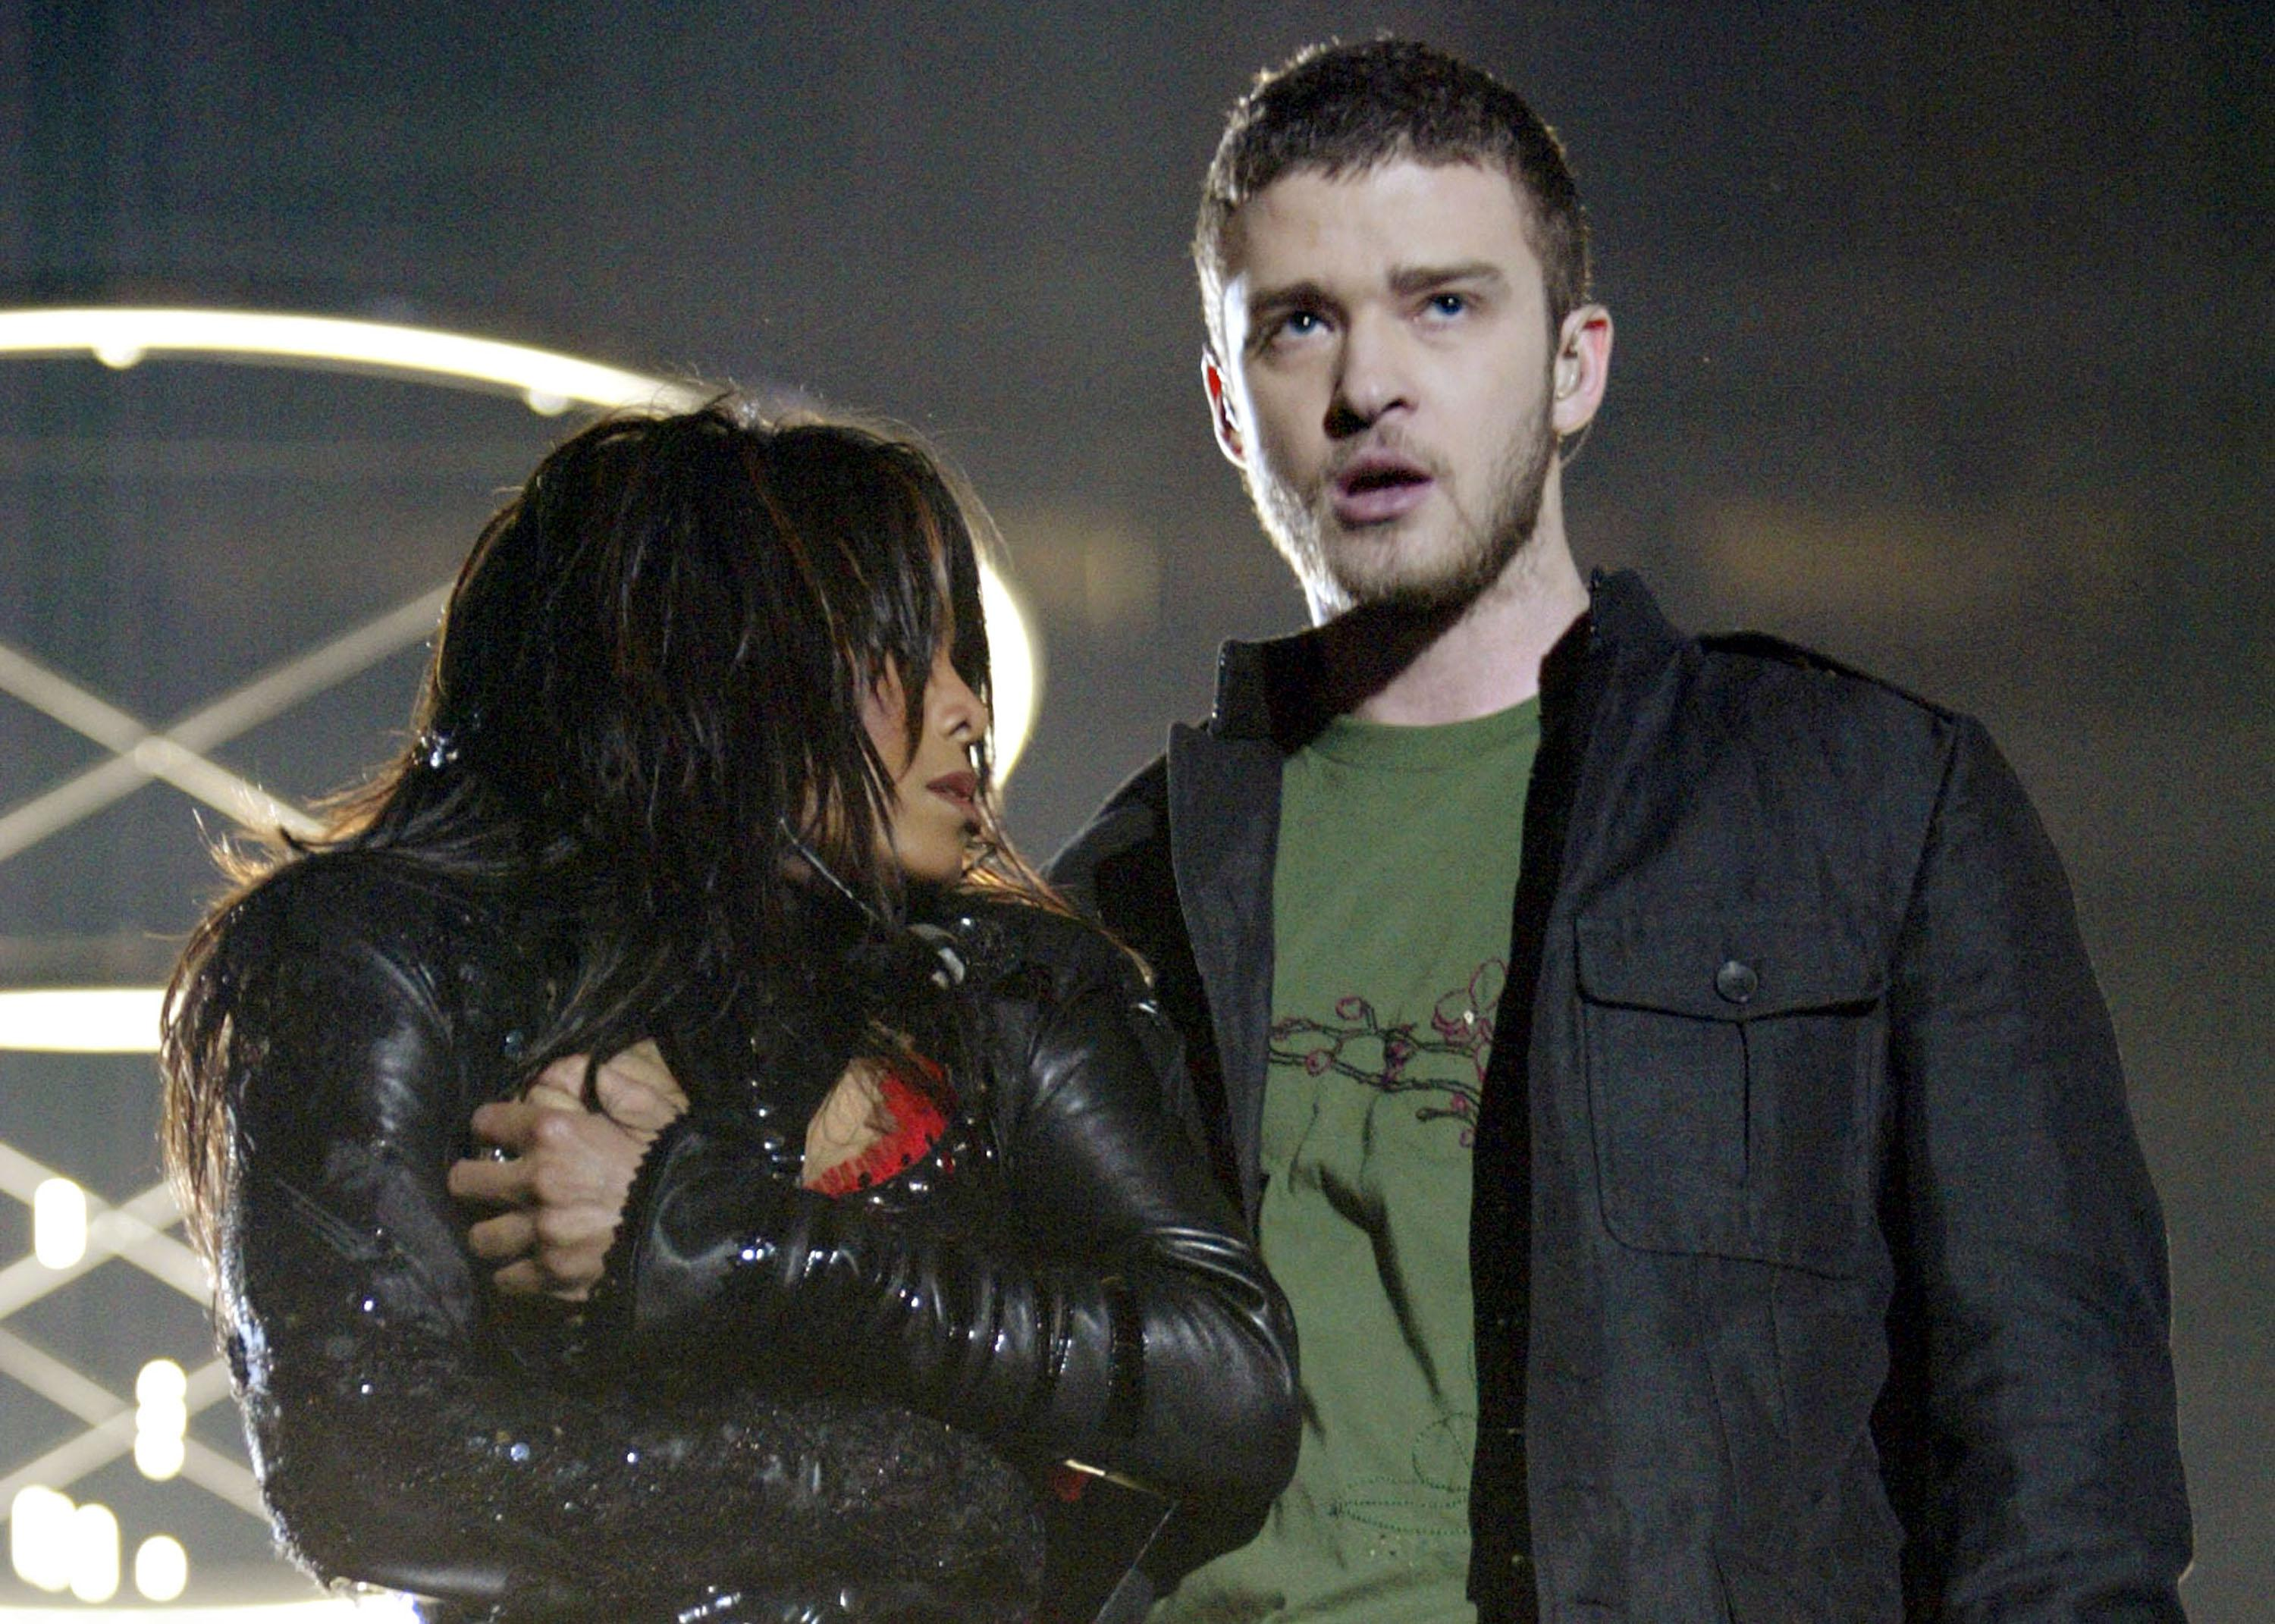 Justin previously performed alongside Janet Jackson in 2004